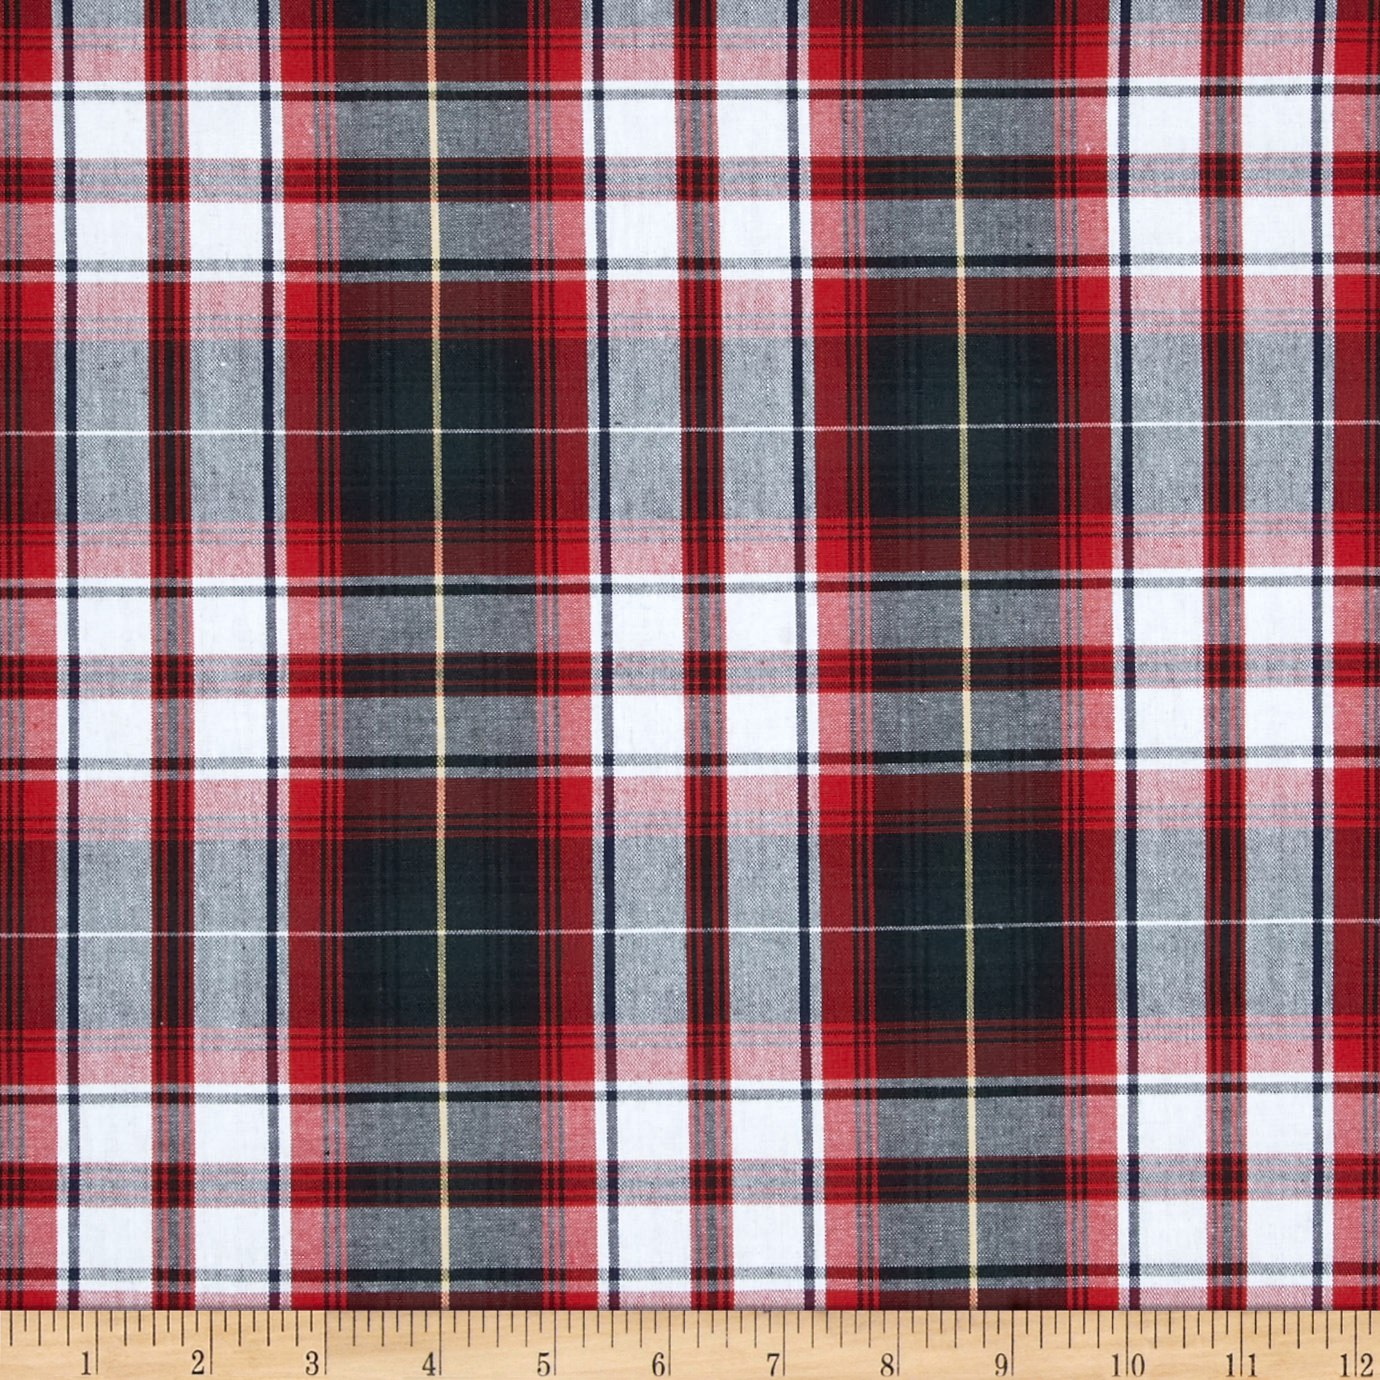 Poly/Cotton Uniform Plaid Green/Black/Red Fabric by Carr in USA